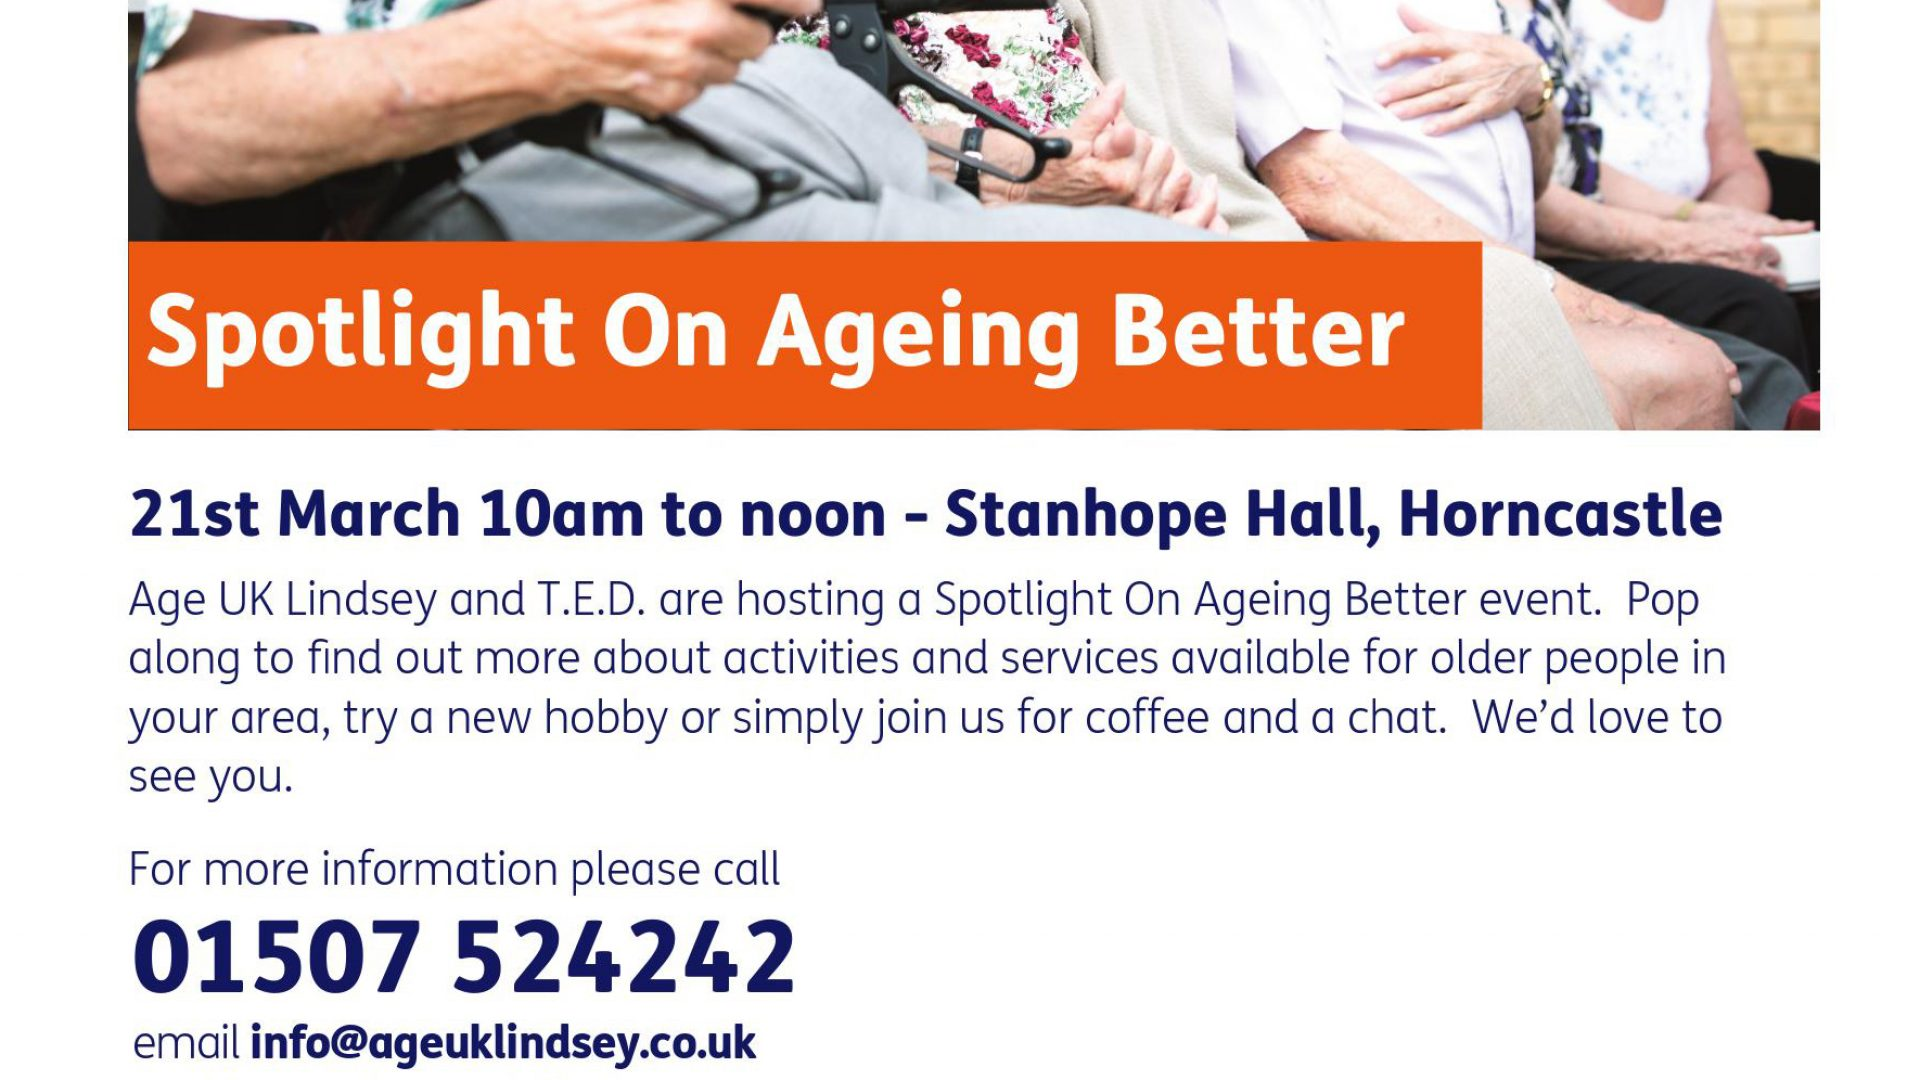 Spotlight on Ageing Better – Wednesday 21st March 10am til 12 noon The Stanhope Hall